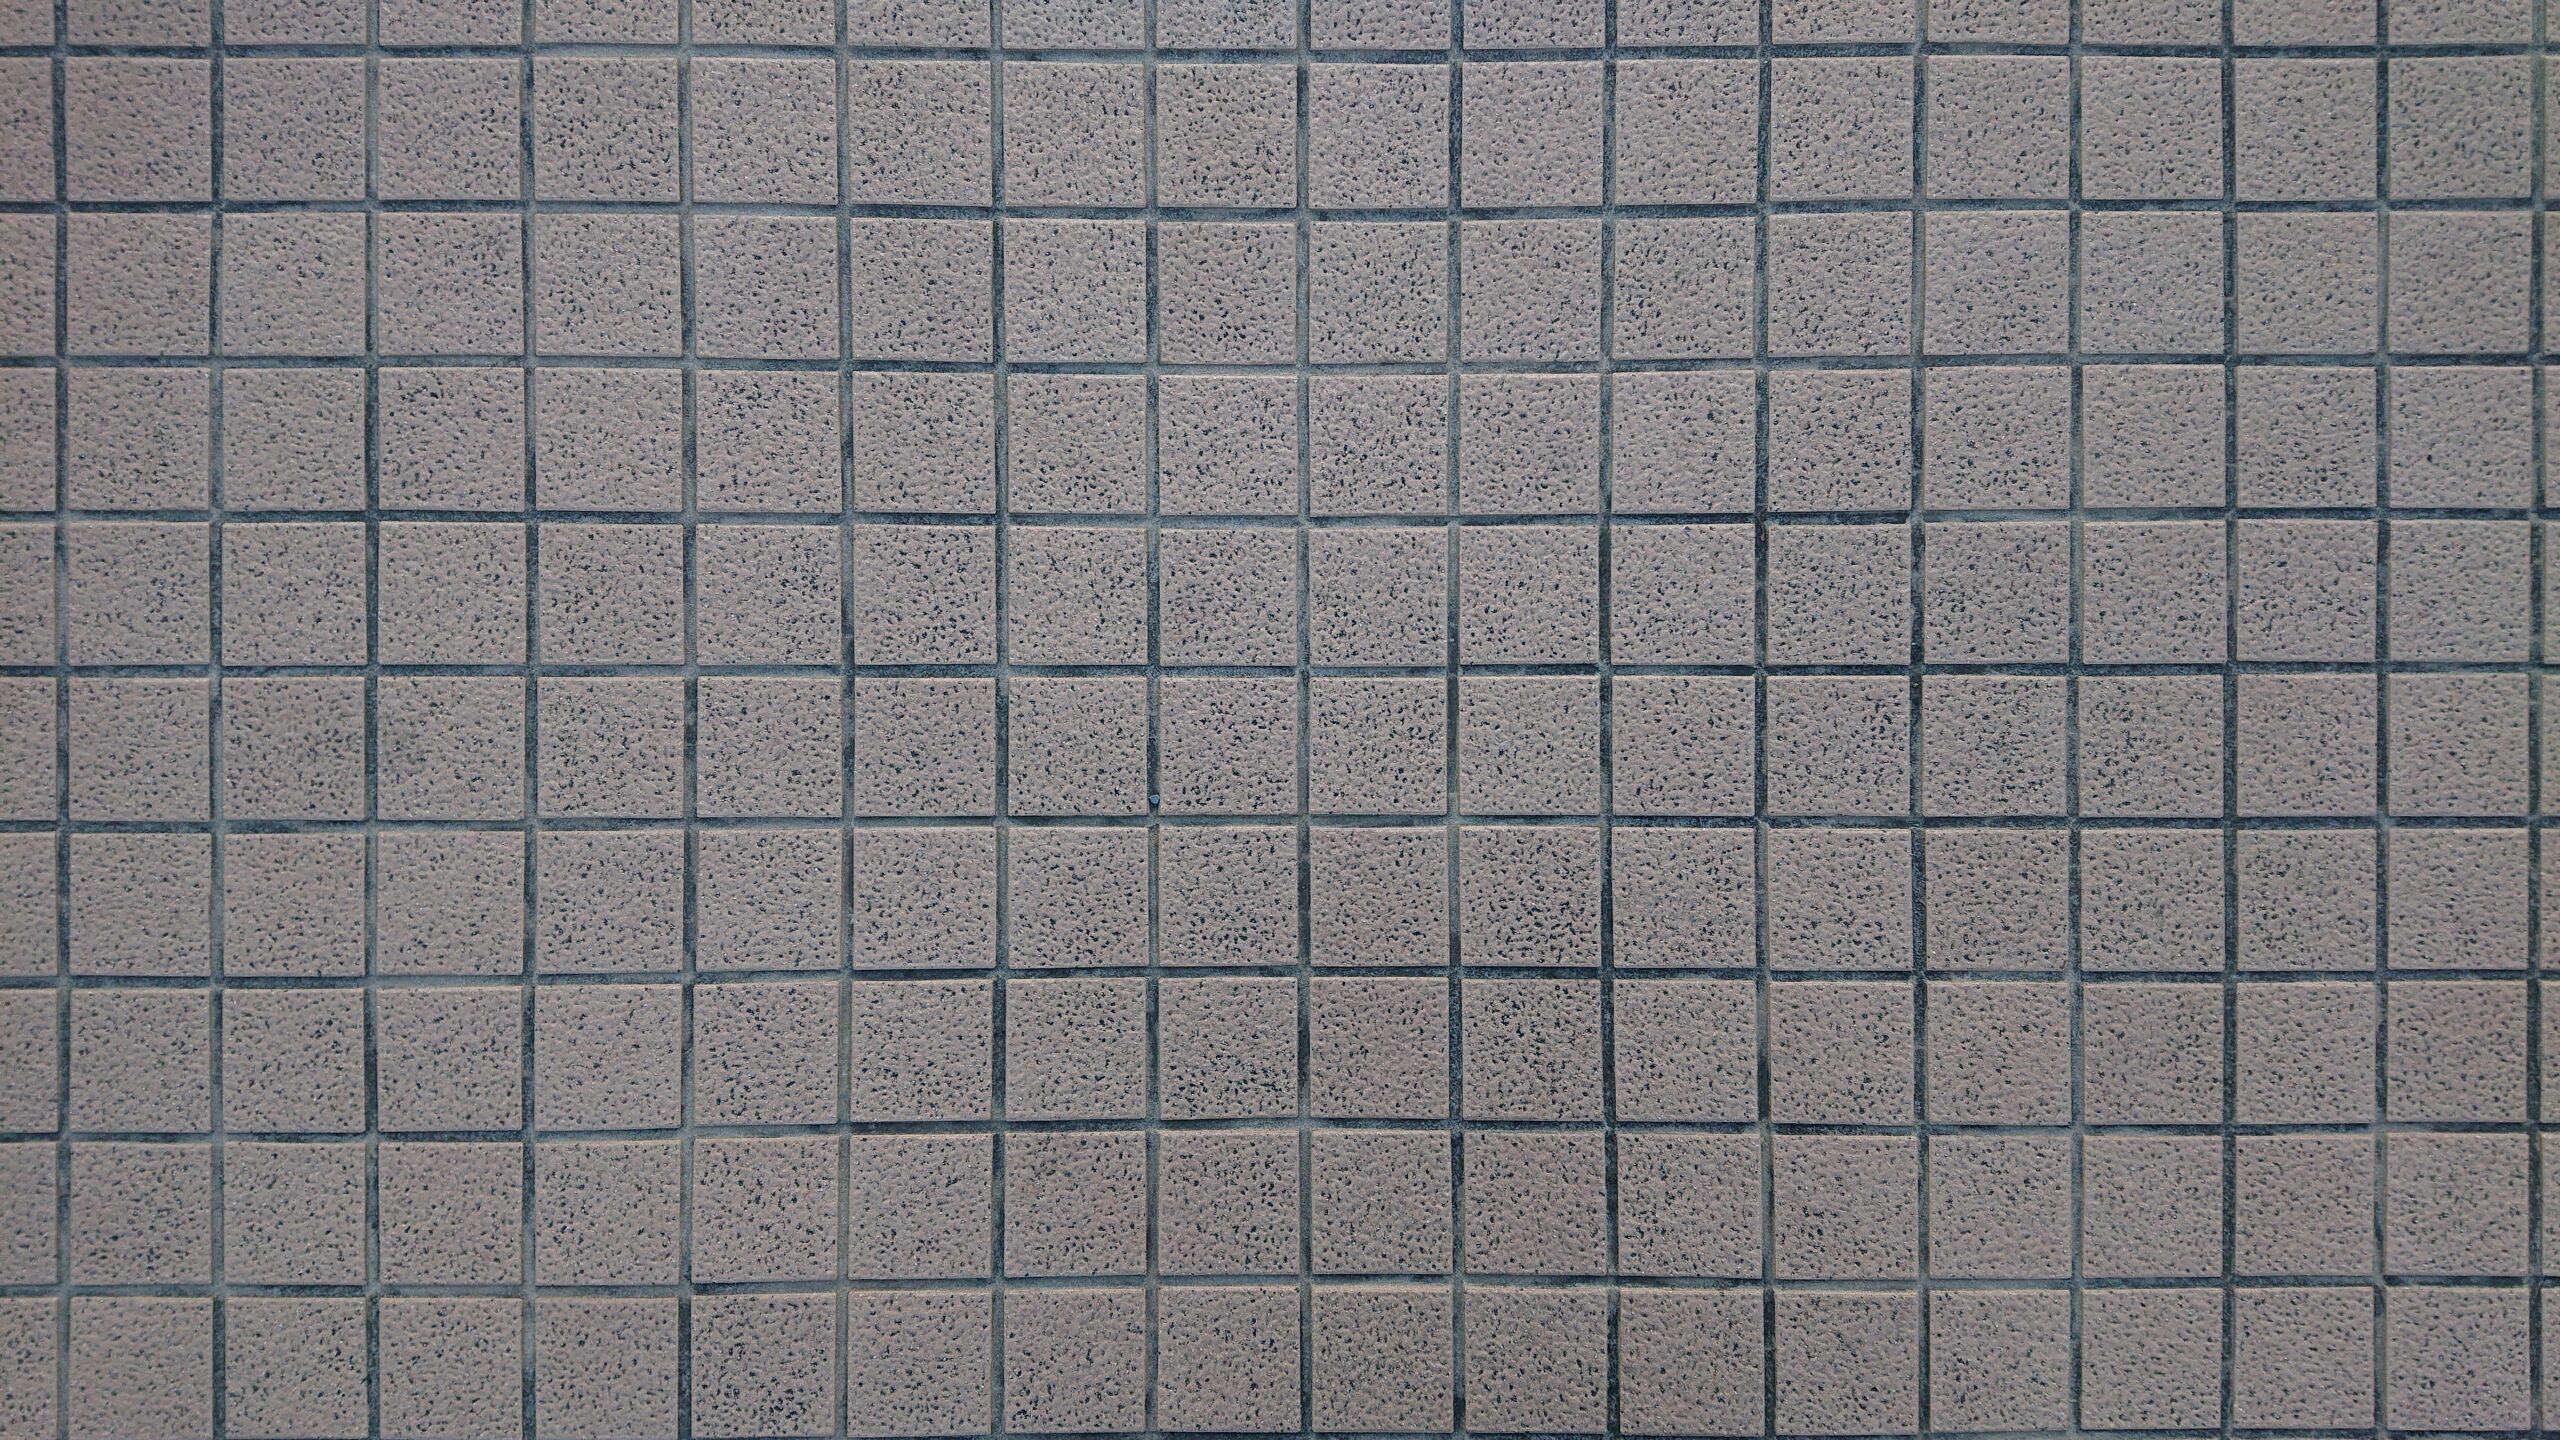 no title is not tile